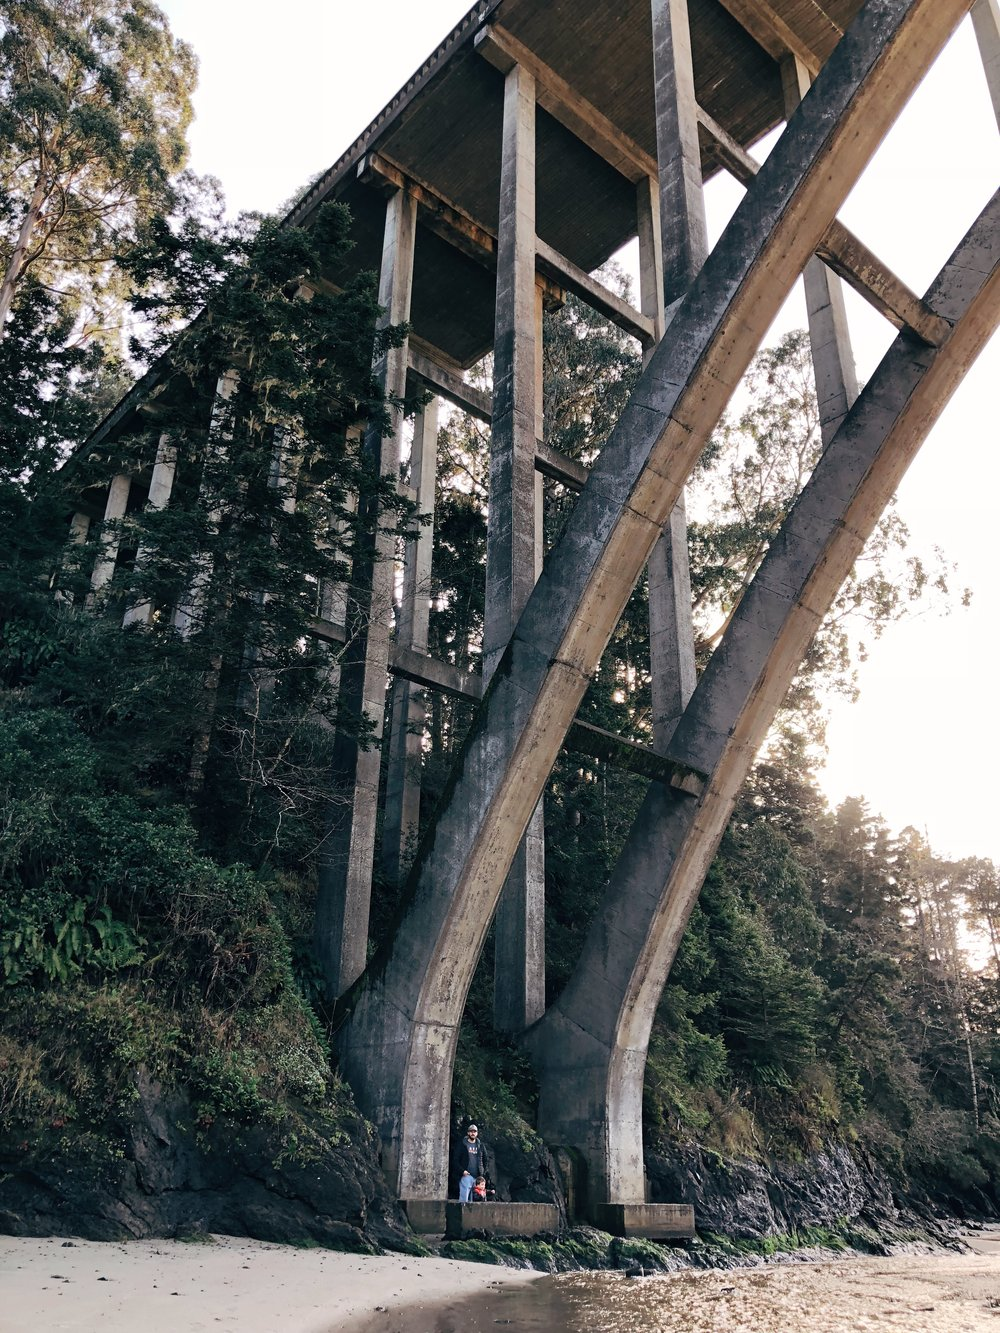 the-curiosity-project-blog-mendocino-road-trip-with-kids-18.jpg